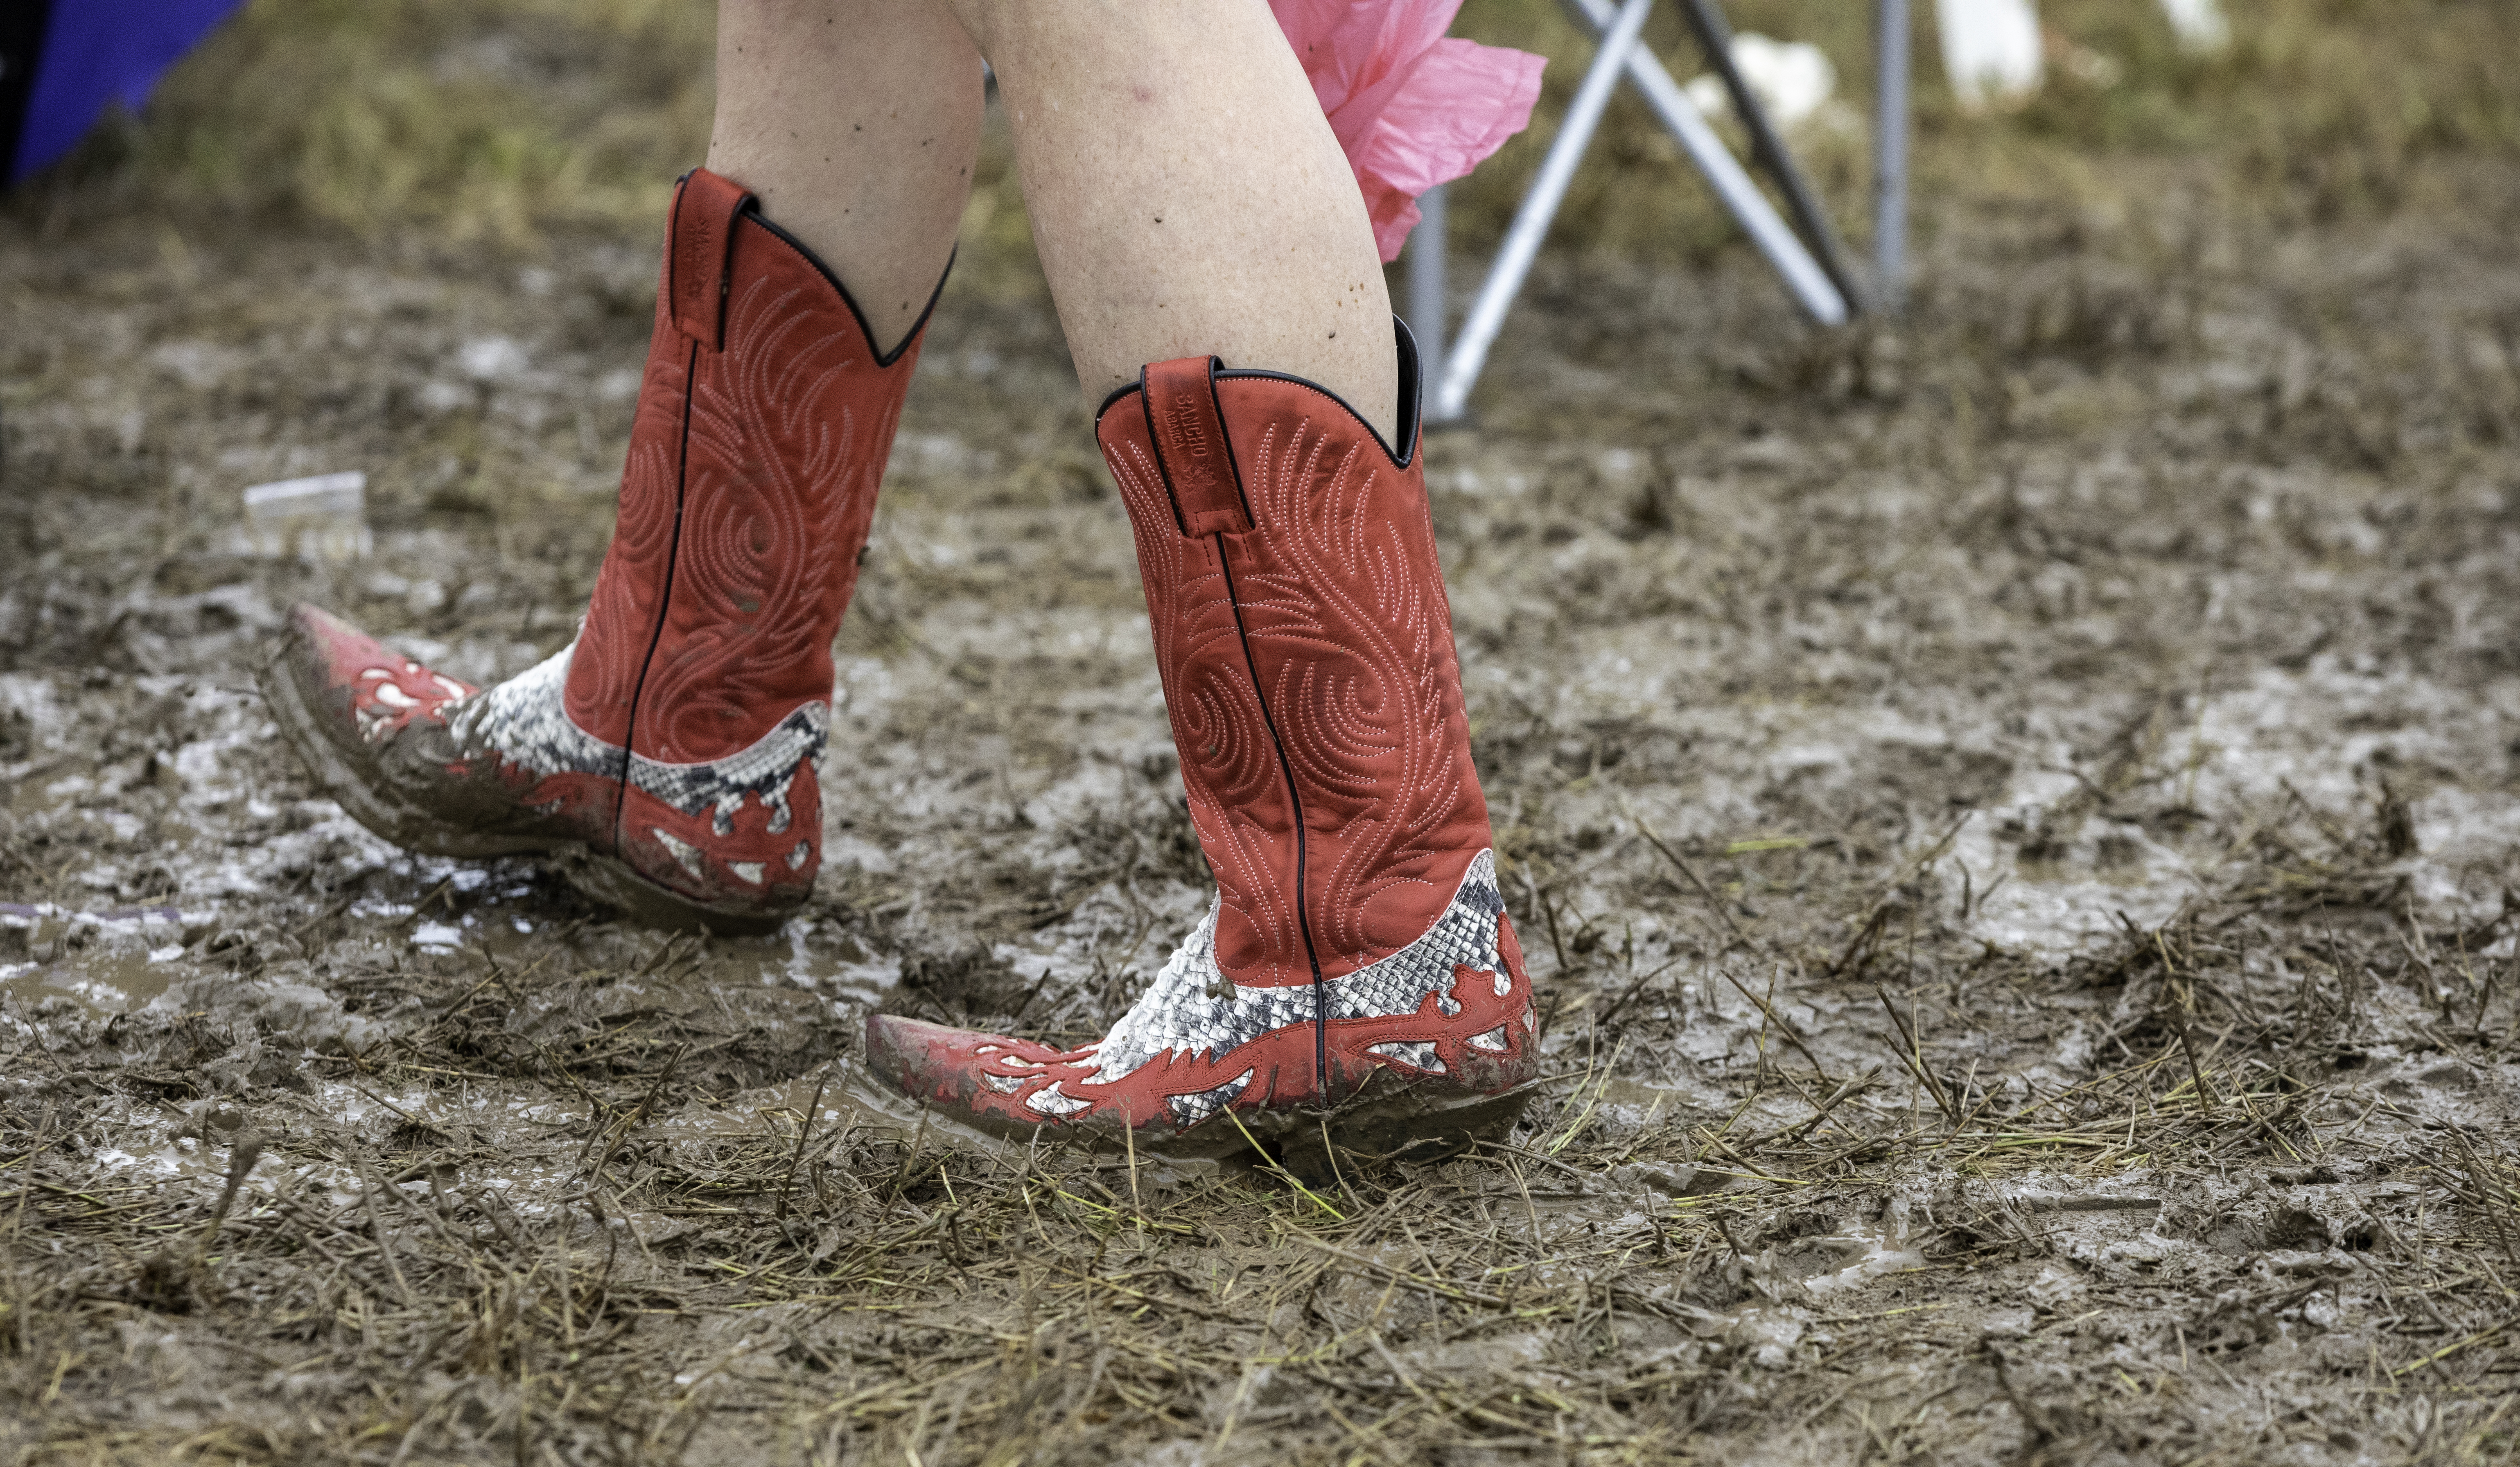 These cowboy boots are made for walking...even in the morning mud - at Tennessee Fields Festival 2021